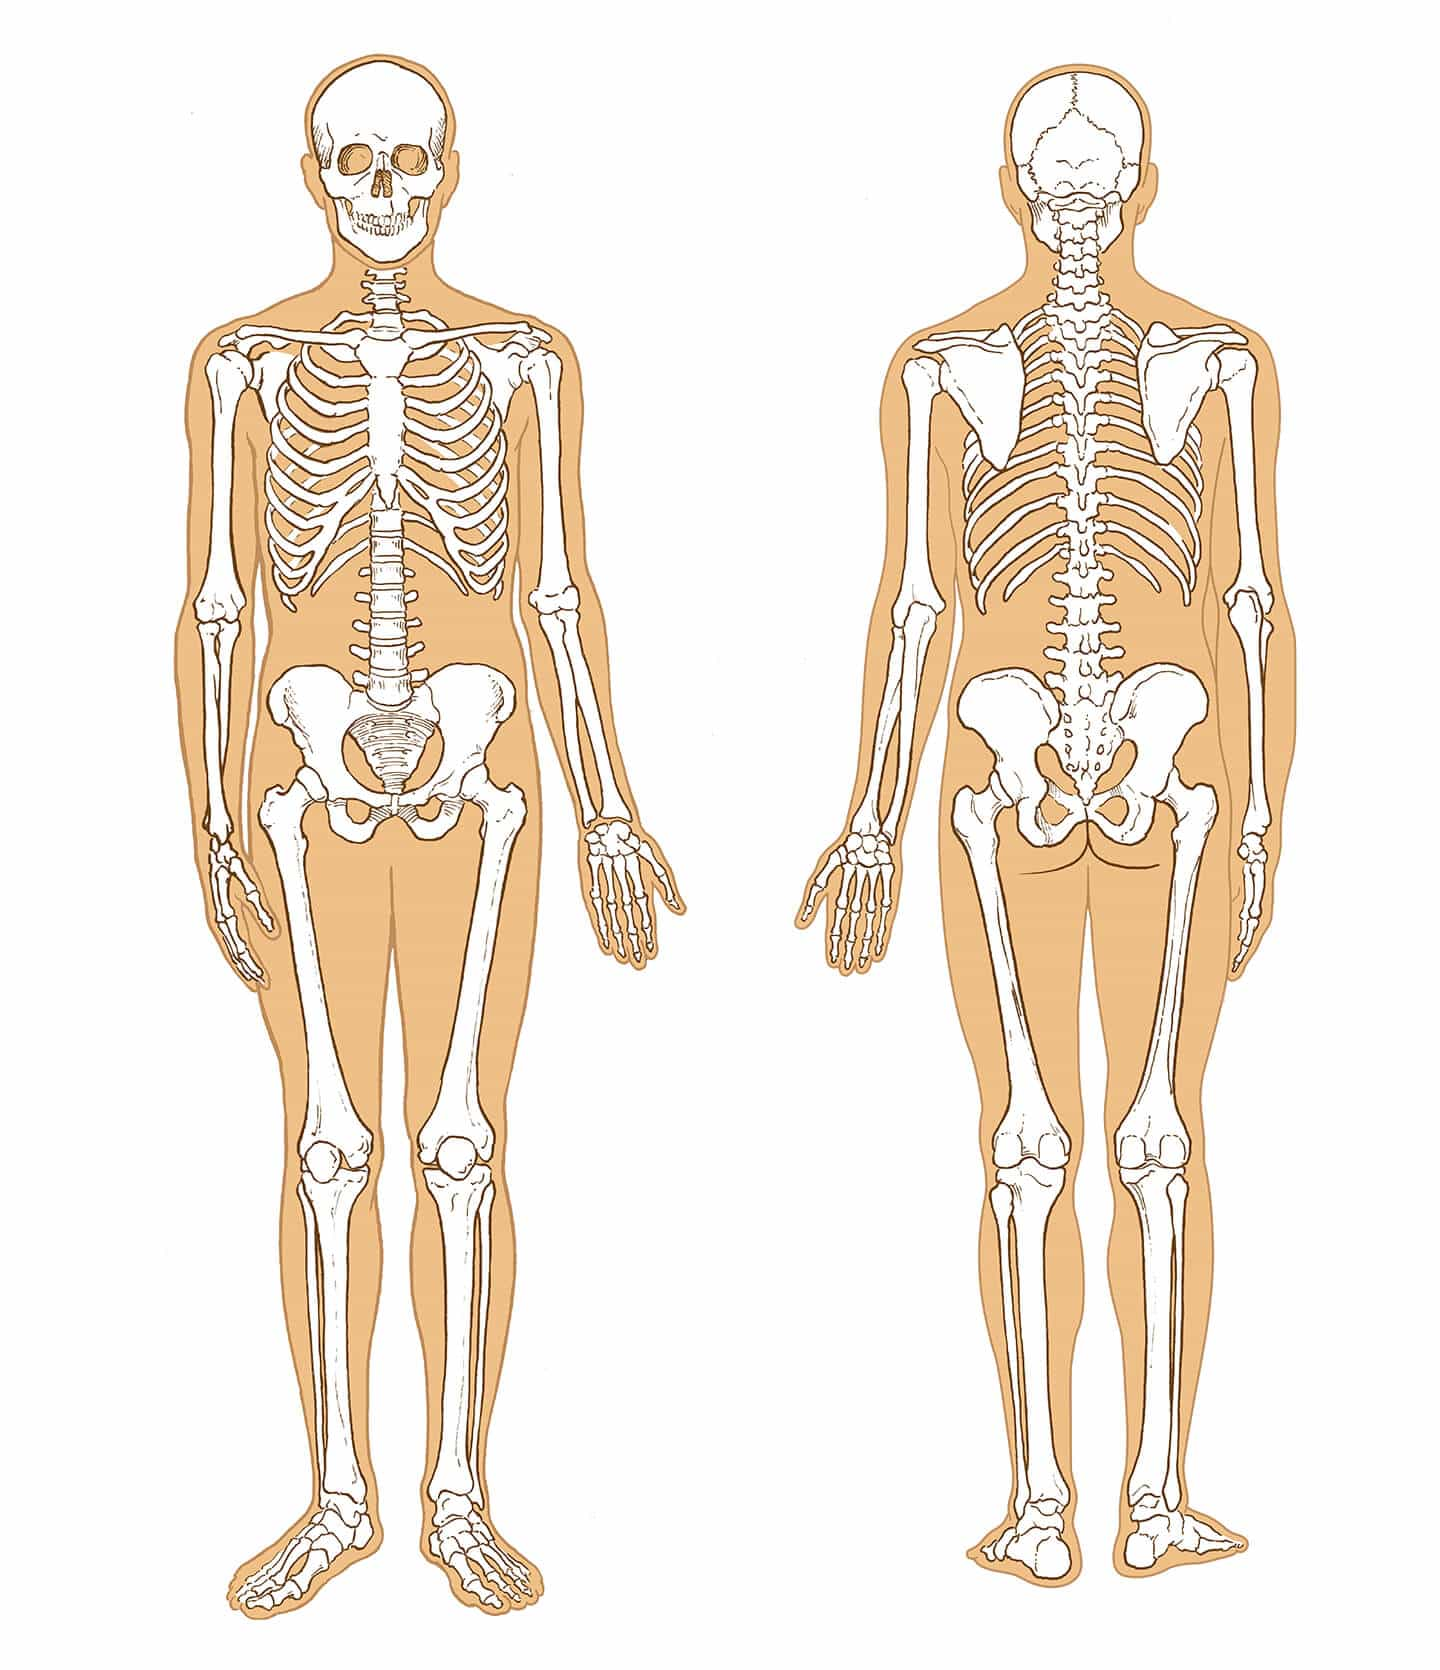 WebMD Illustrations - Skeletal